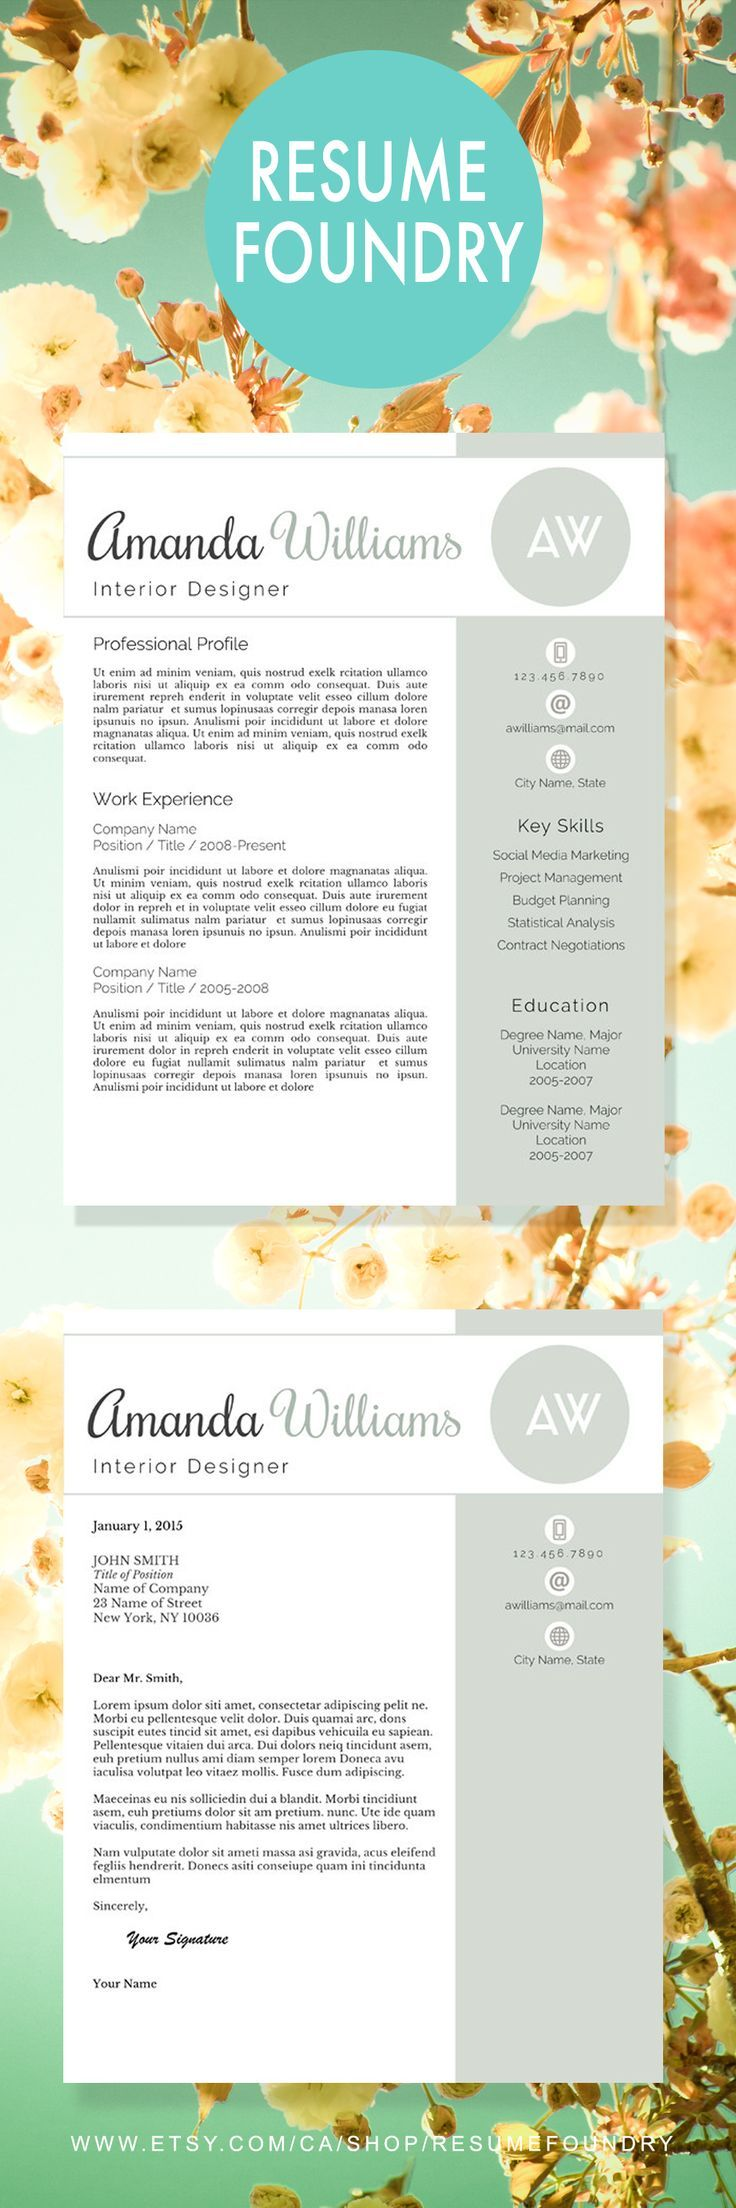 Modern Resume Template For Word, 1 3 Page Resume + Cover Letter + Reference  Page | US Letter | INSTANT DOWNLOAD | Amanda